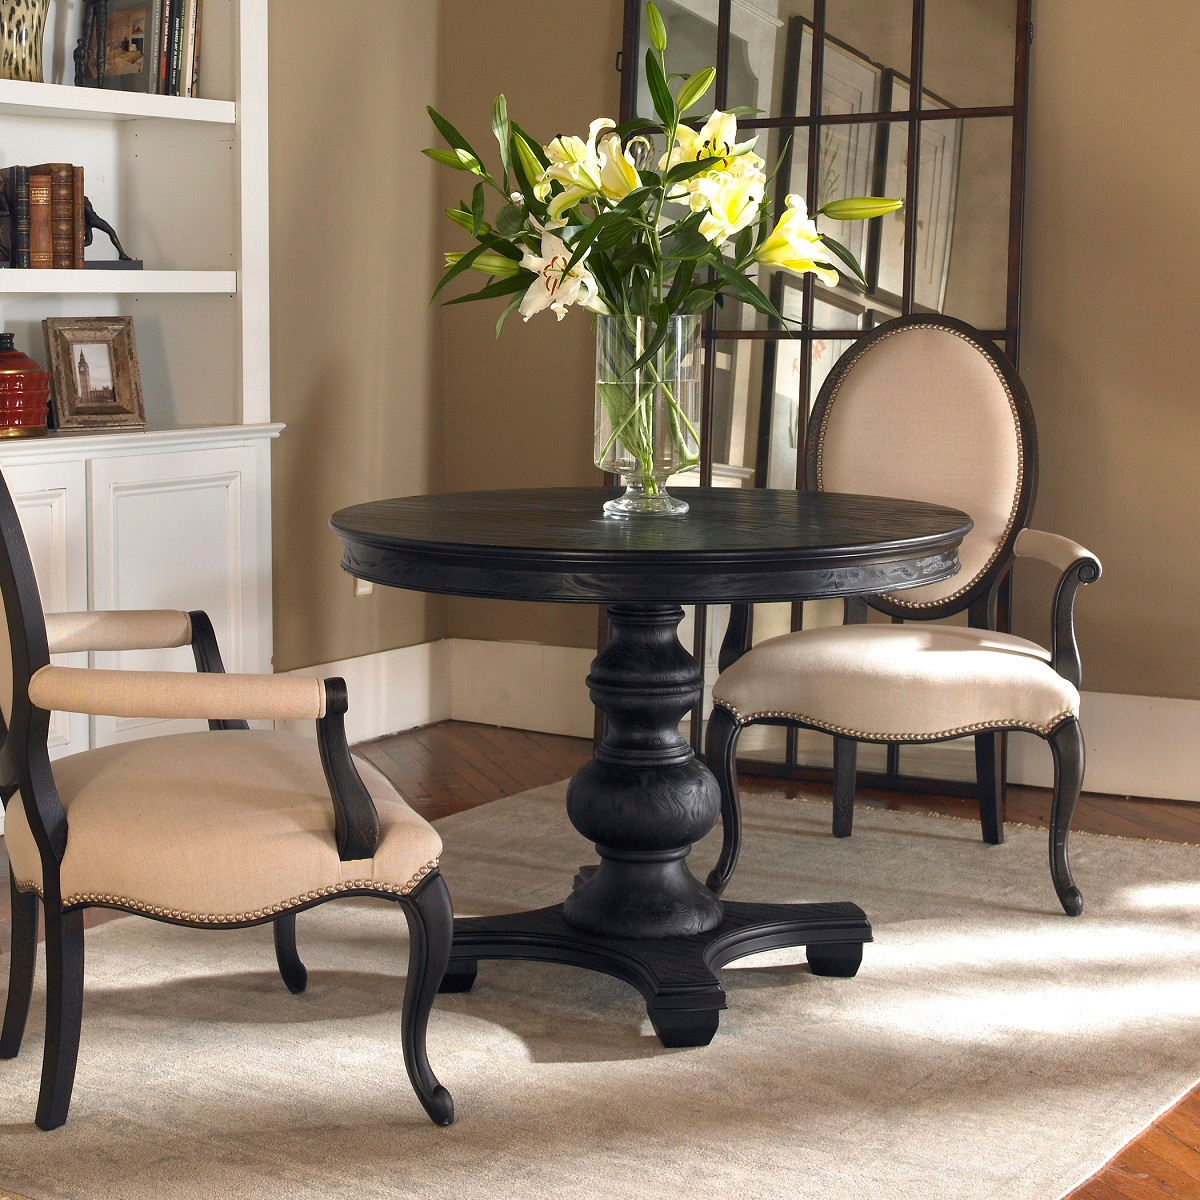 brynmore black round pedestal table 42"